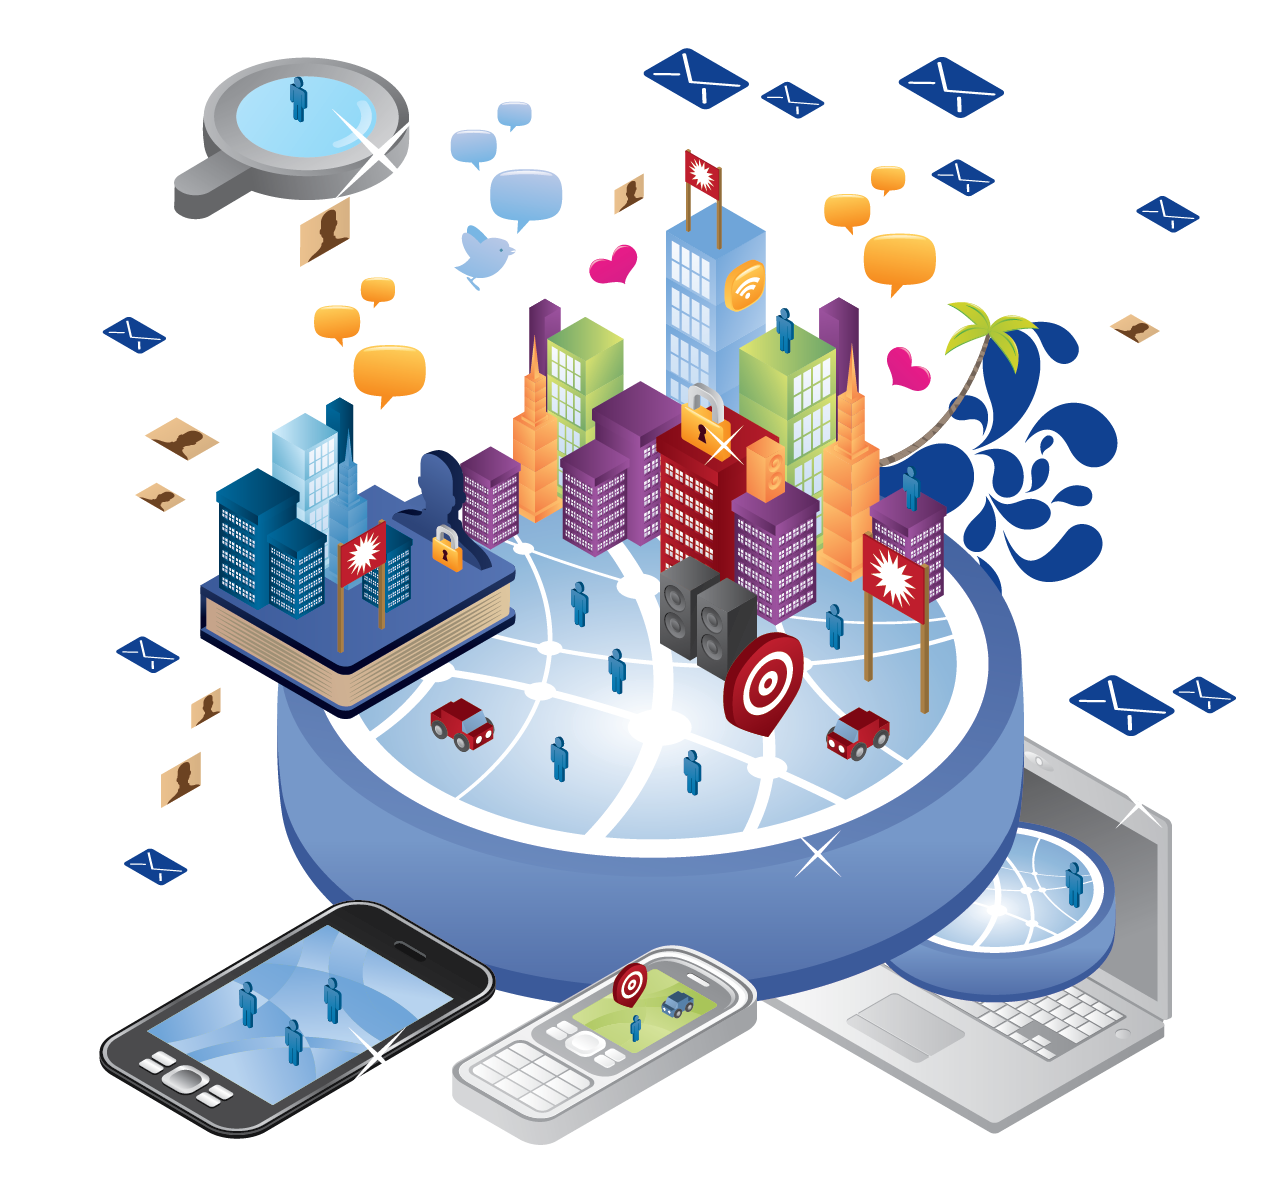 BCN, mobile i smart city